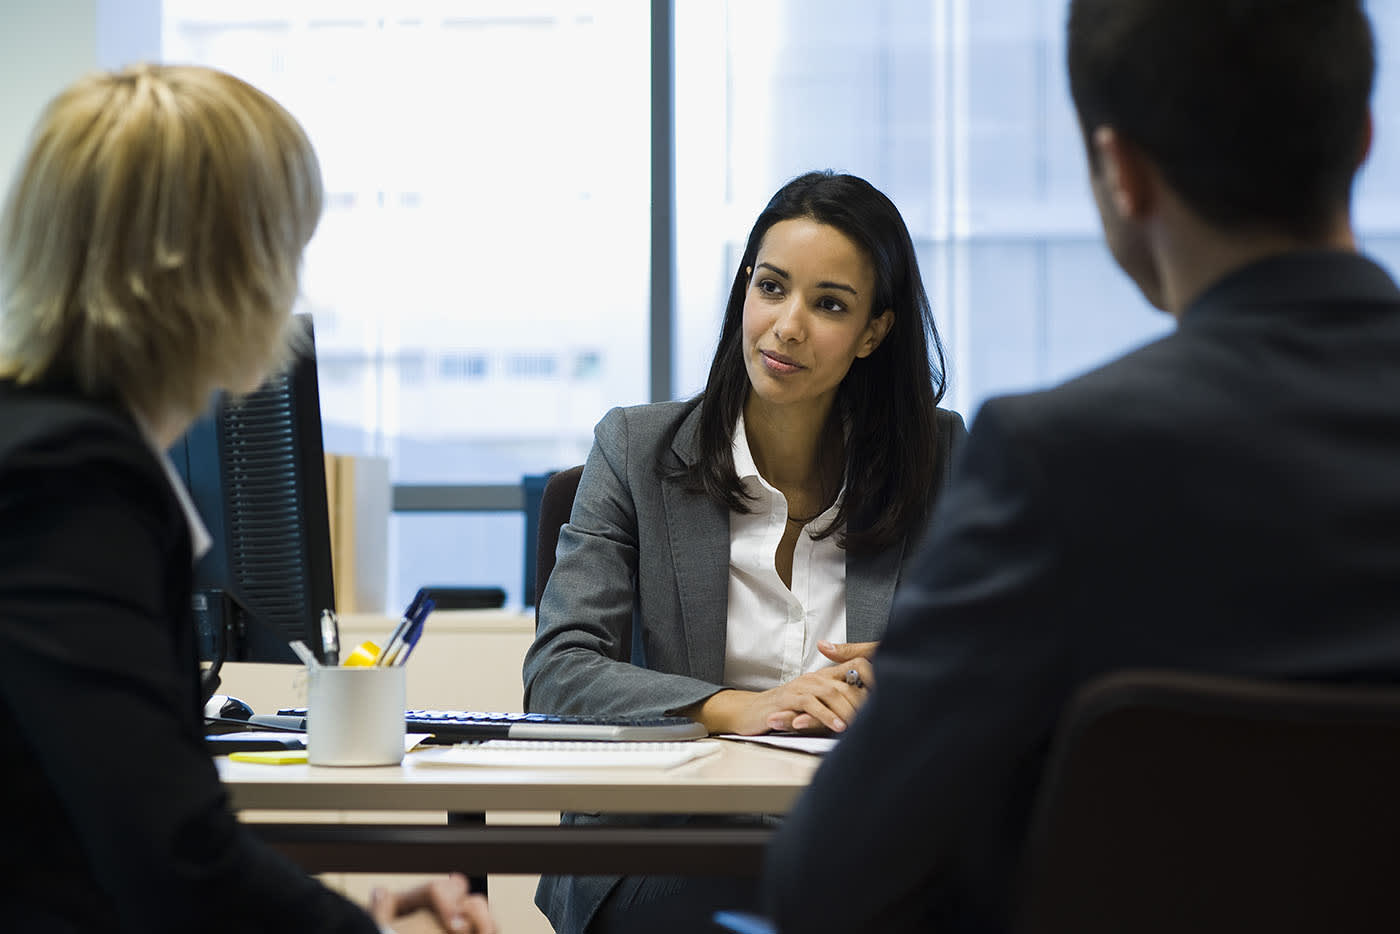 Hero Image How to Become a Paralegal: Career and Salary Information